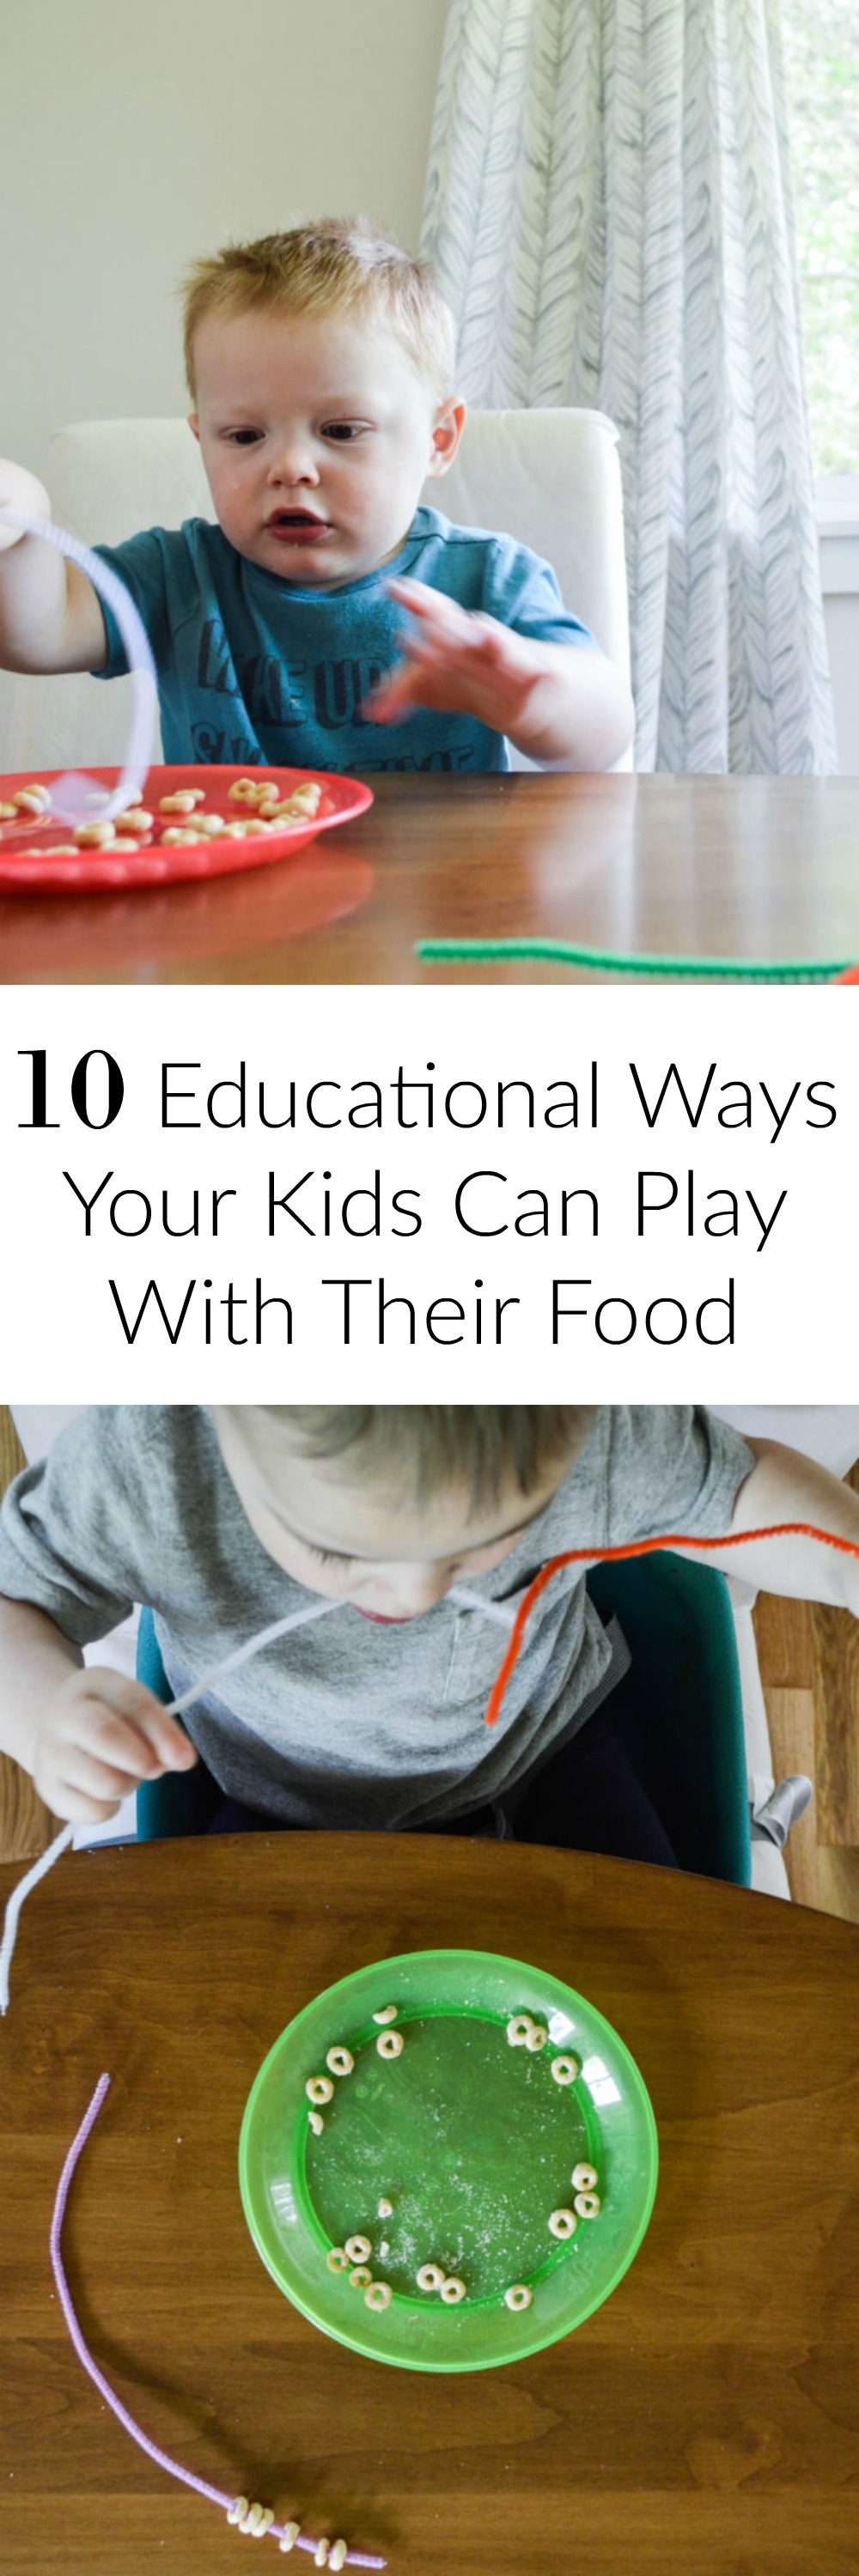 Such great tips to incorporate snacking and learning. We will definitely be trying some of these ideas!